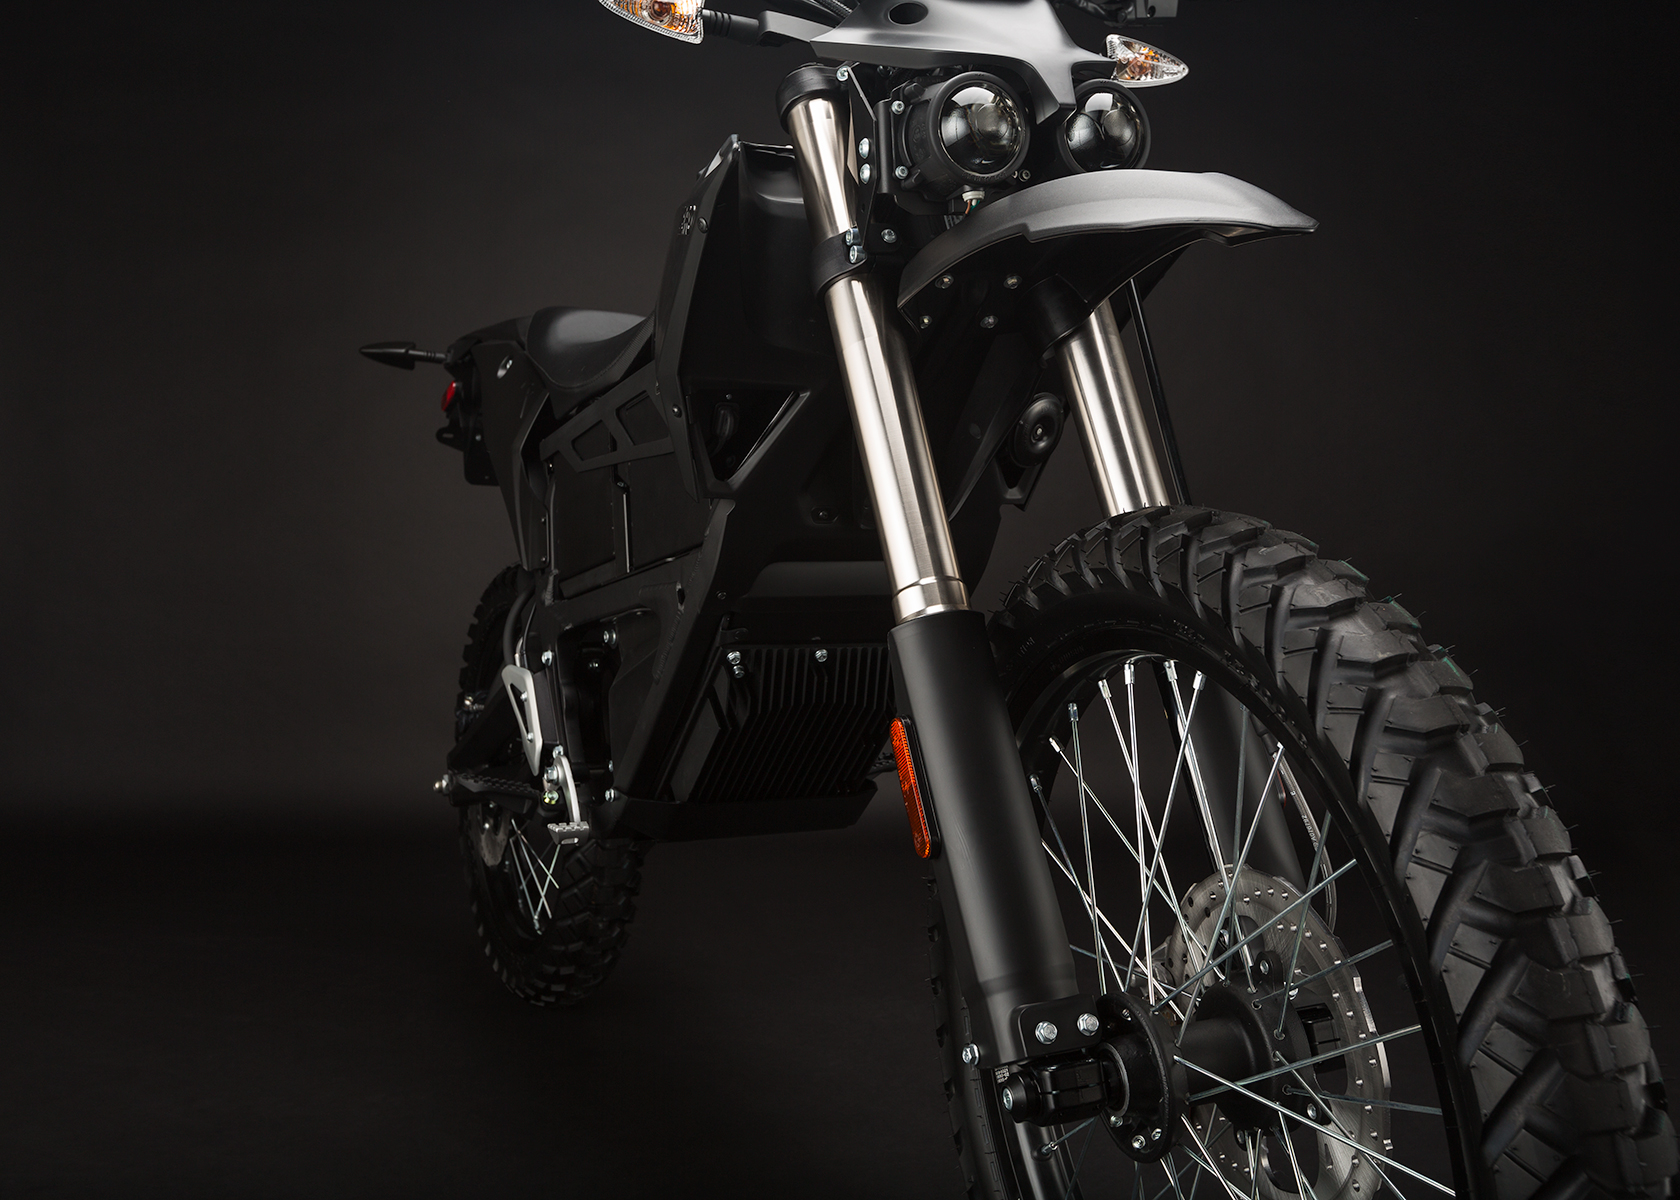 2014 Zero FX Electric Motorcycle: Front Fork